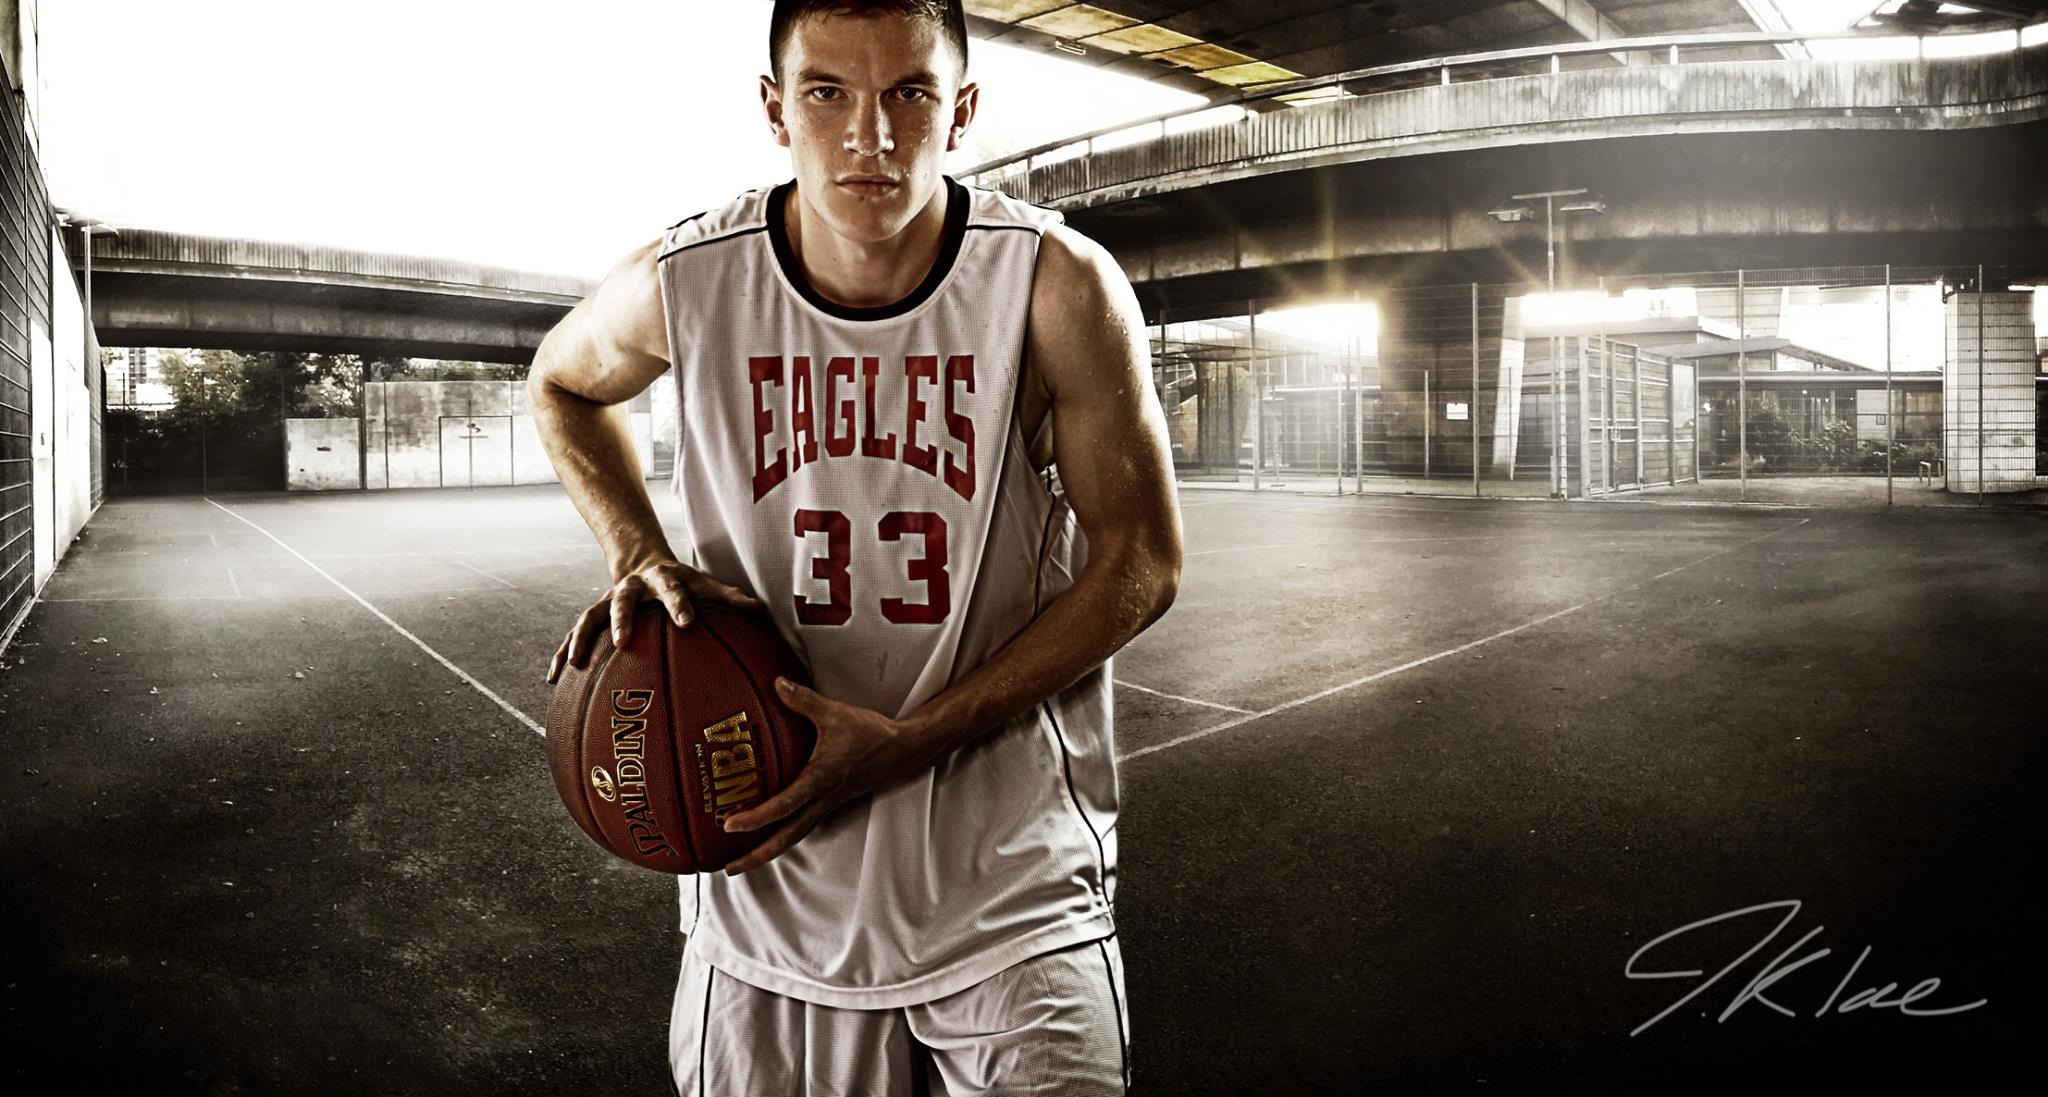 Basketball-Player-senior-portrait-1.jpg